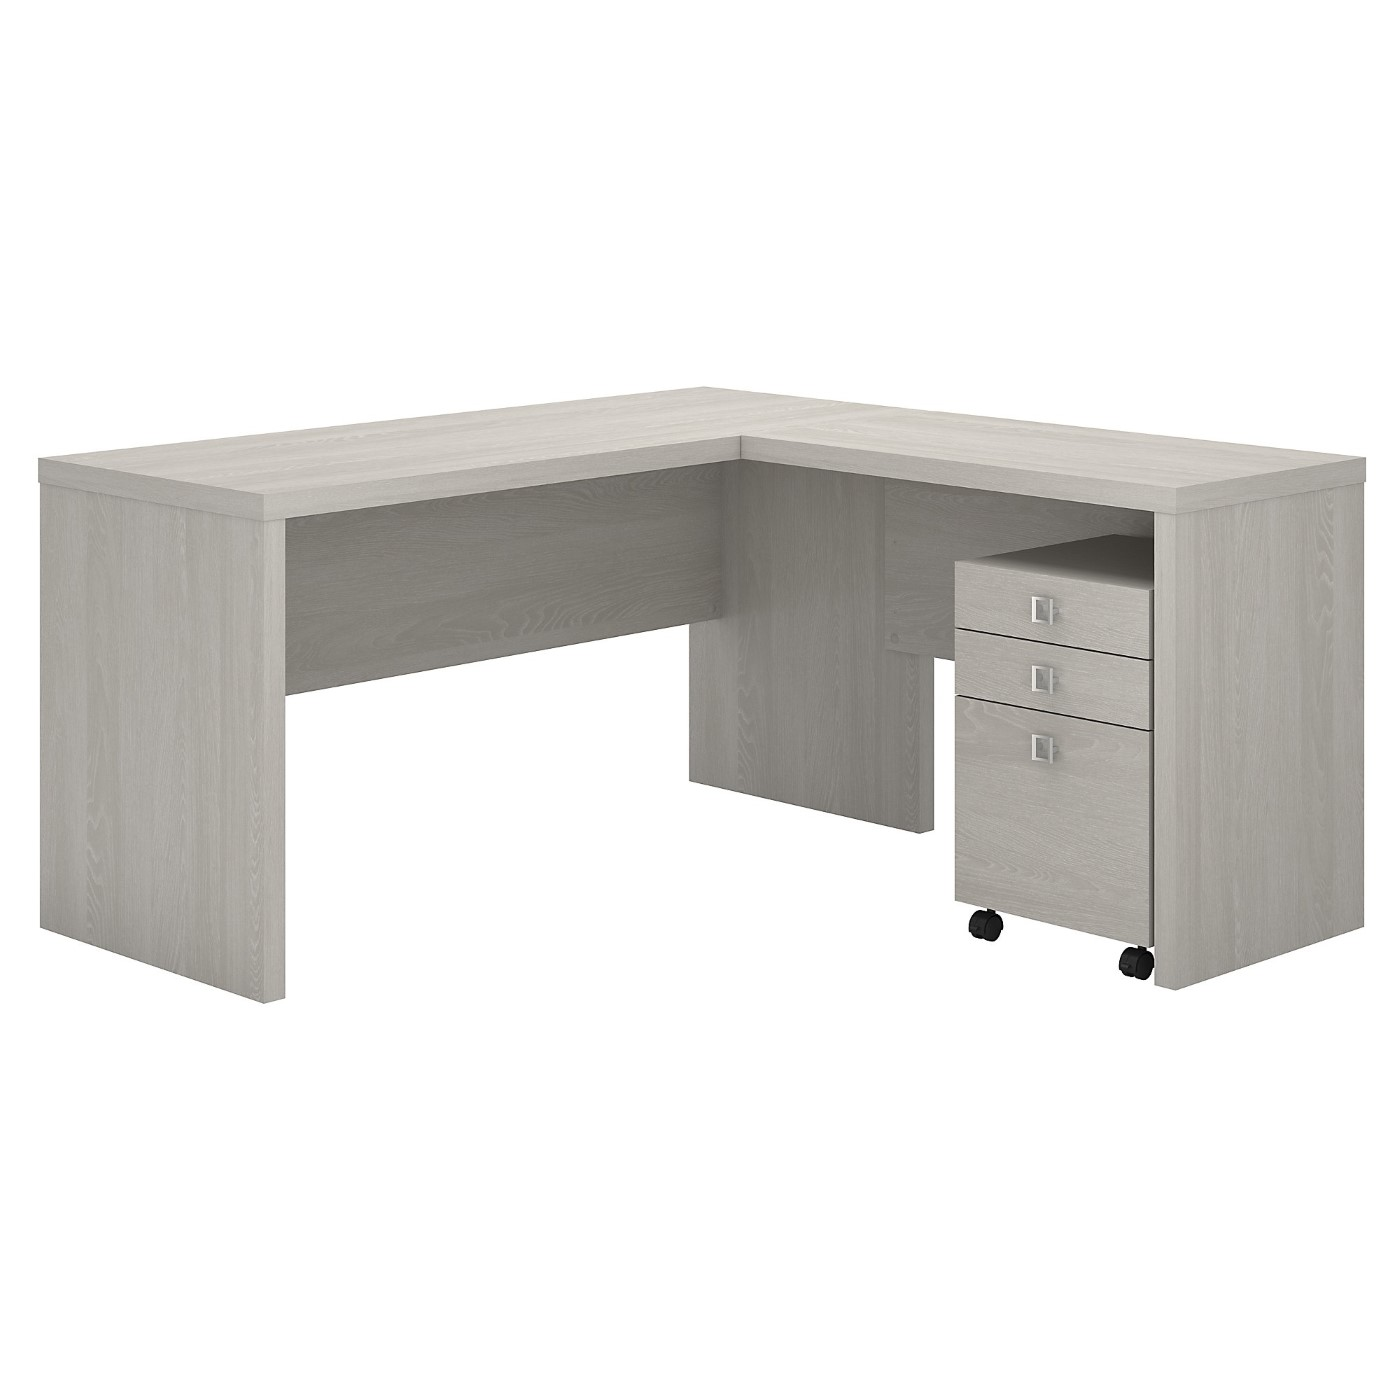 The kathy ireland� Echo L Shaped Desk with Mobile File Cabinet is Sustainable Eco Friendly Furniture. Includes Free Shipping! 30H x 72L x 72W.